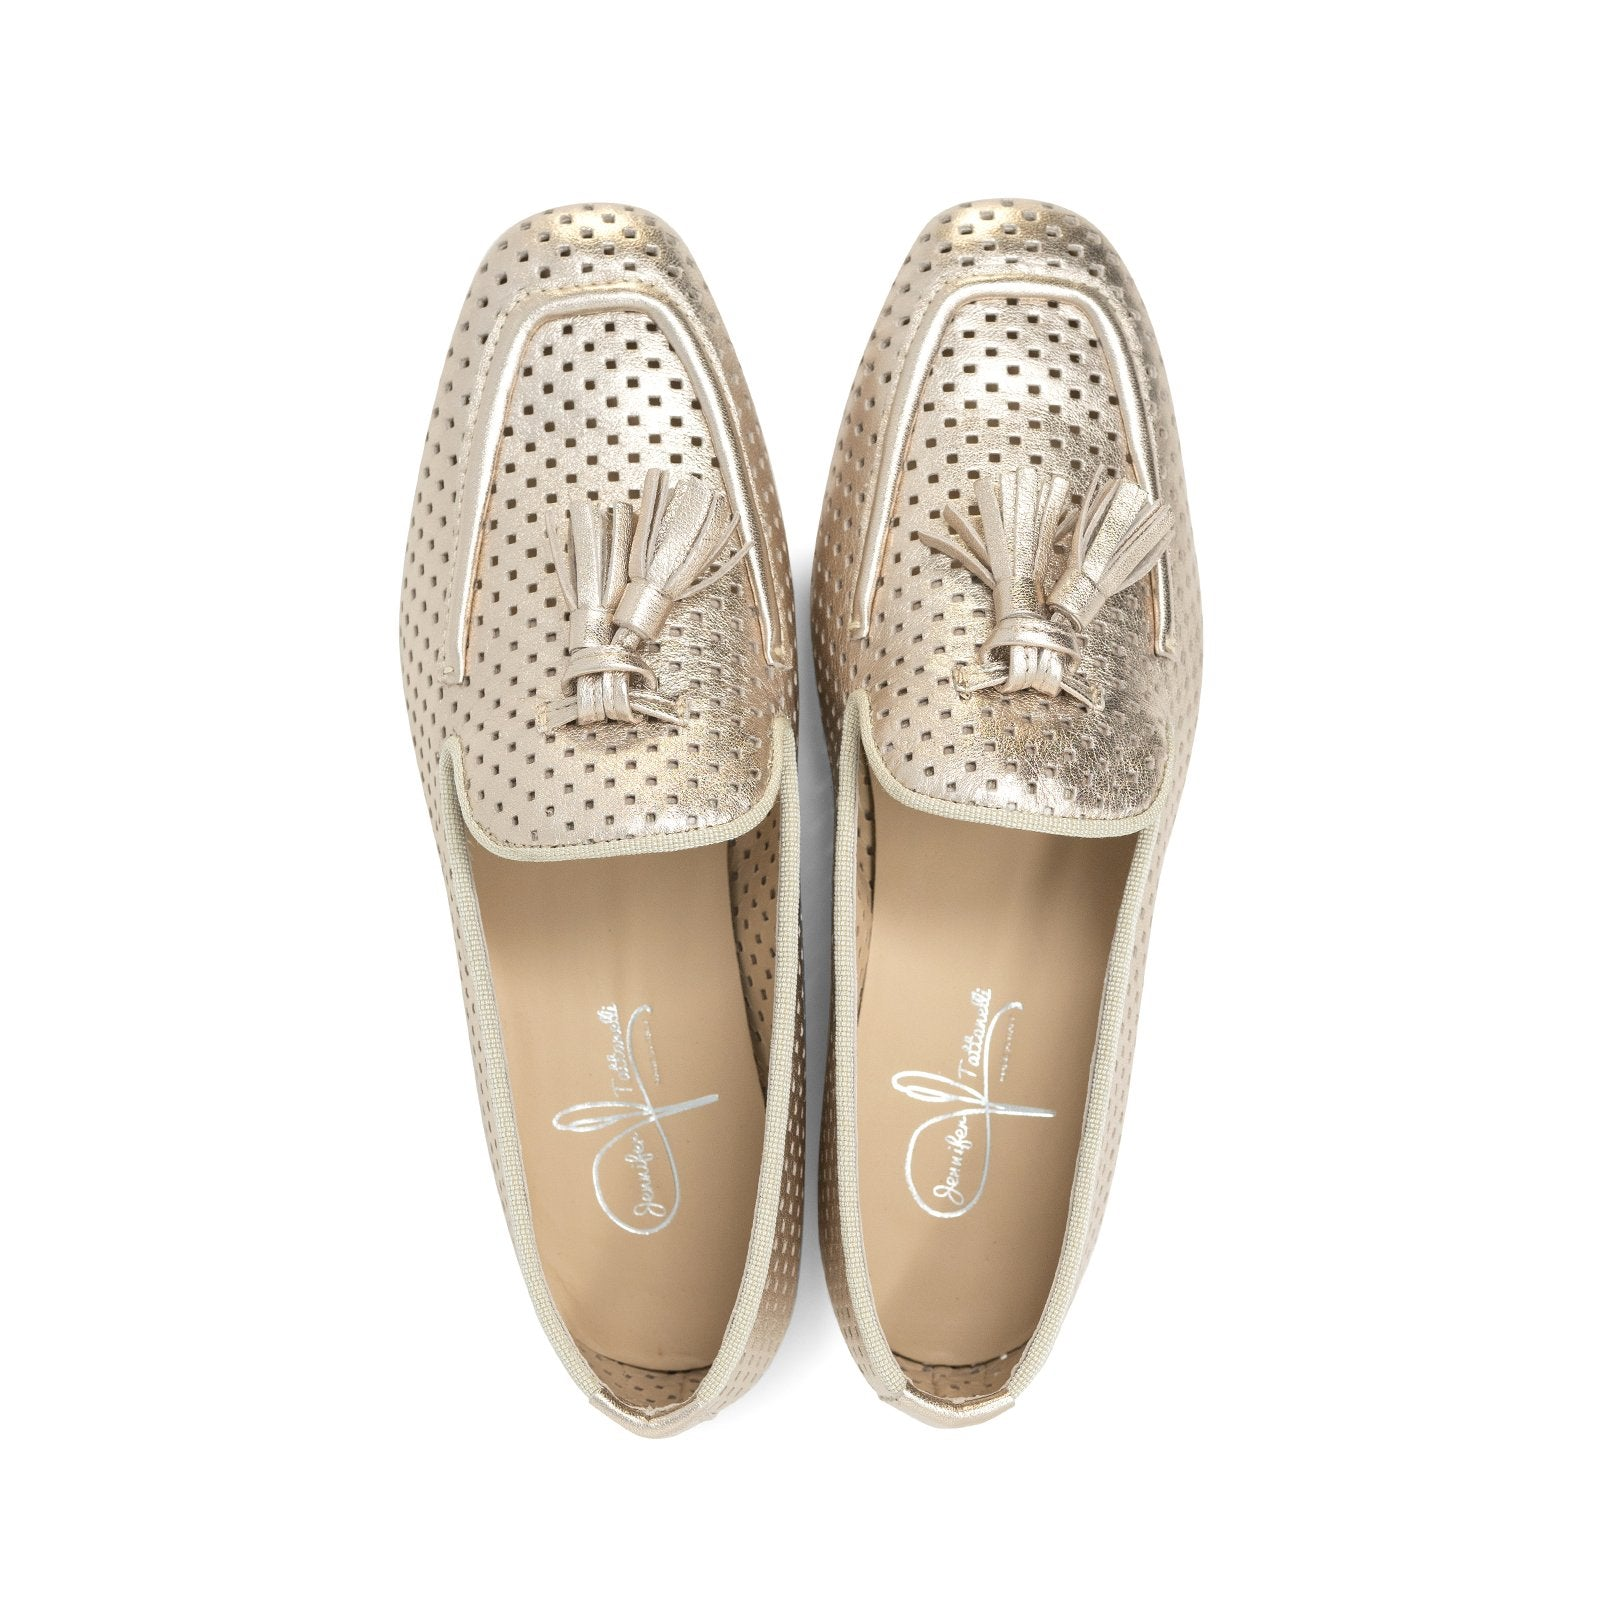 Women Perforated Leather Loafers in Gold - Jennifer Tattanelli